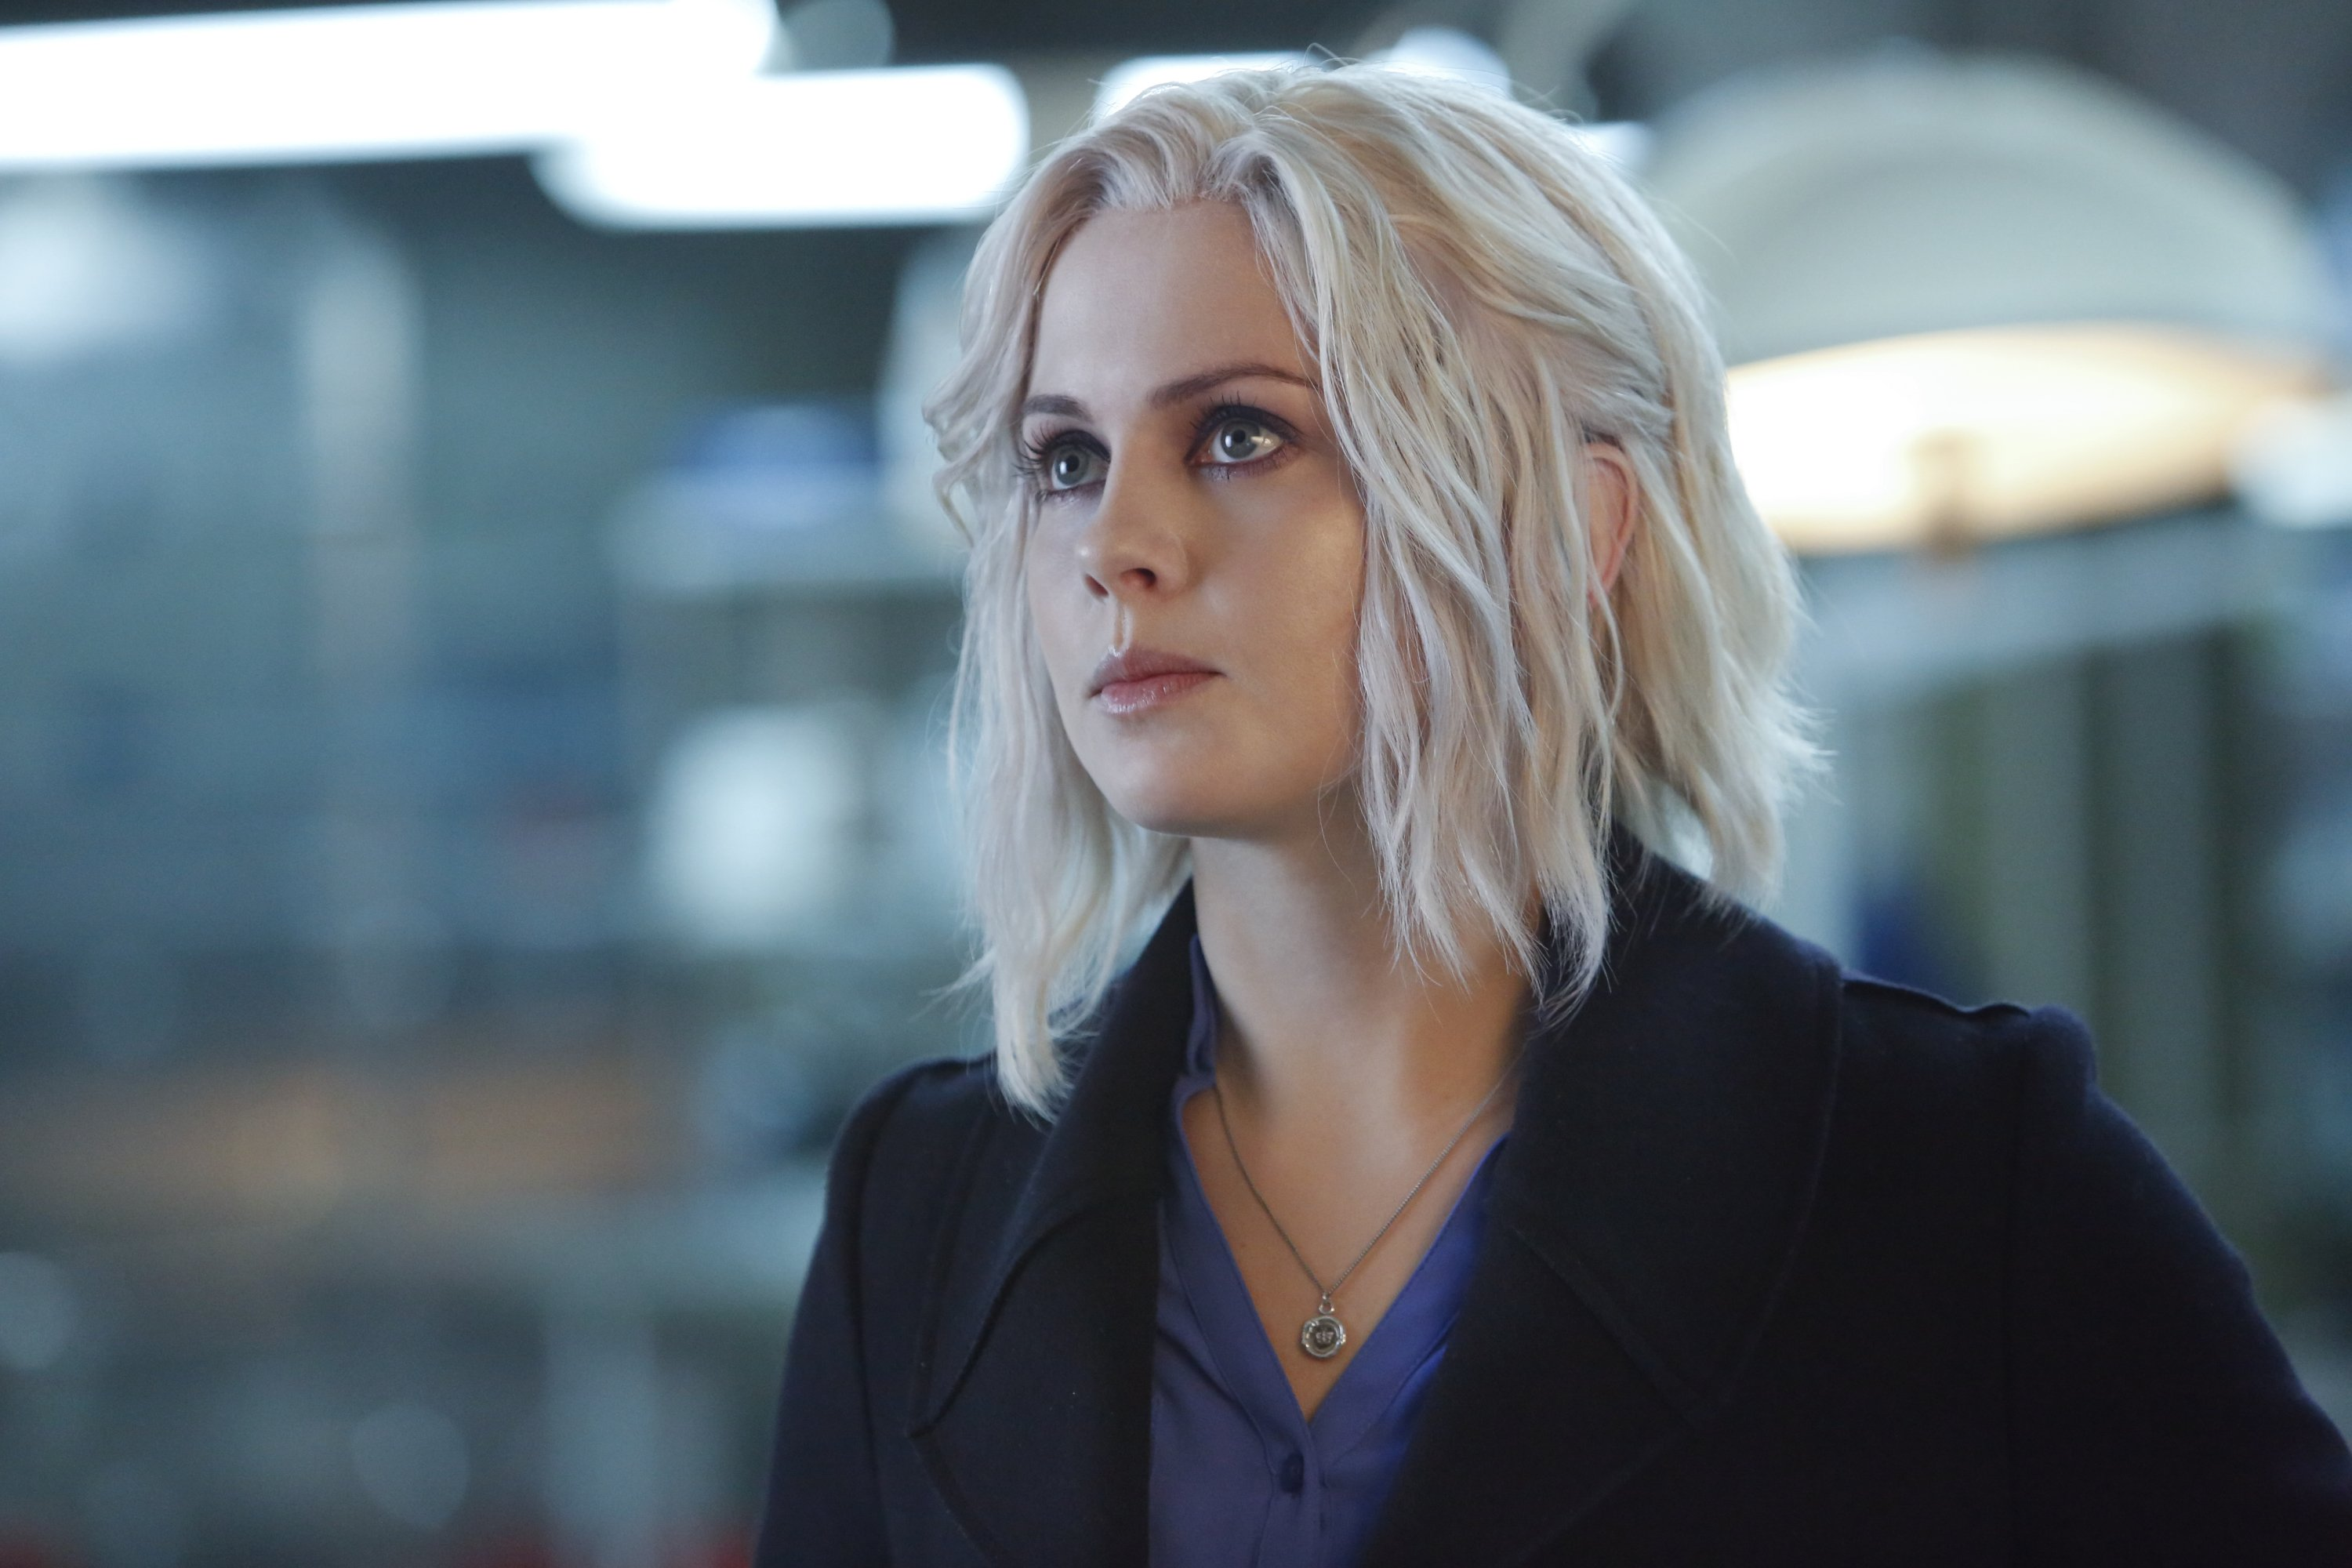 izombie rose mciver, hd tv shows, 4k wallpapers, images, backgrounds